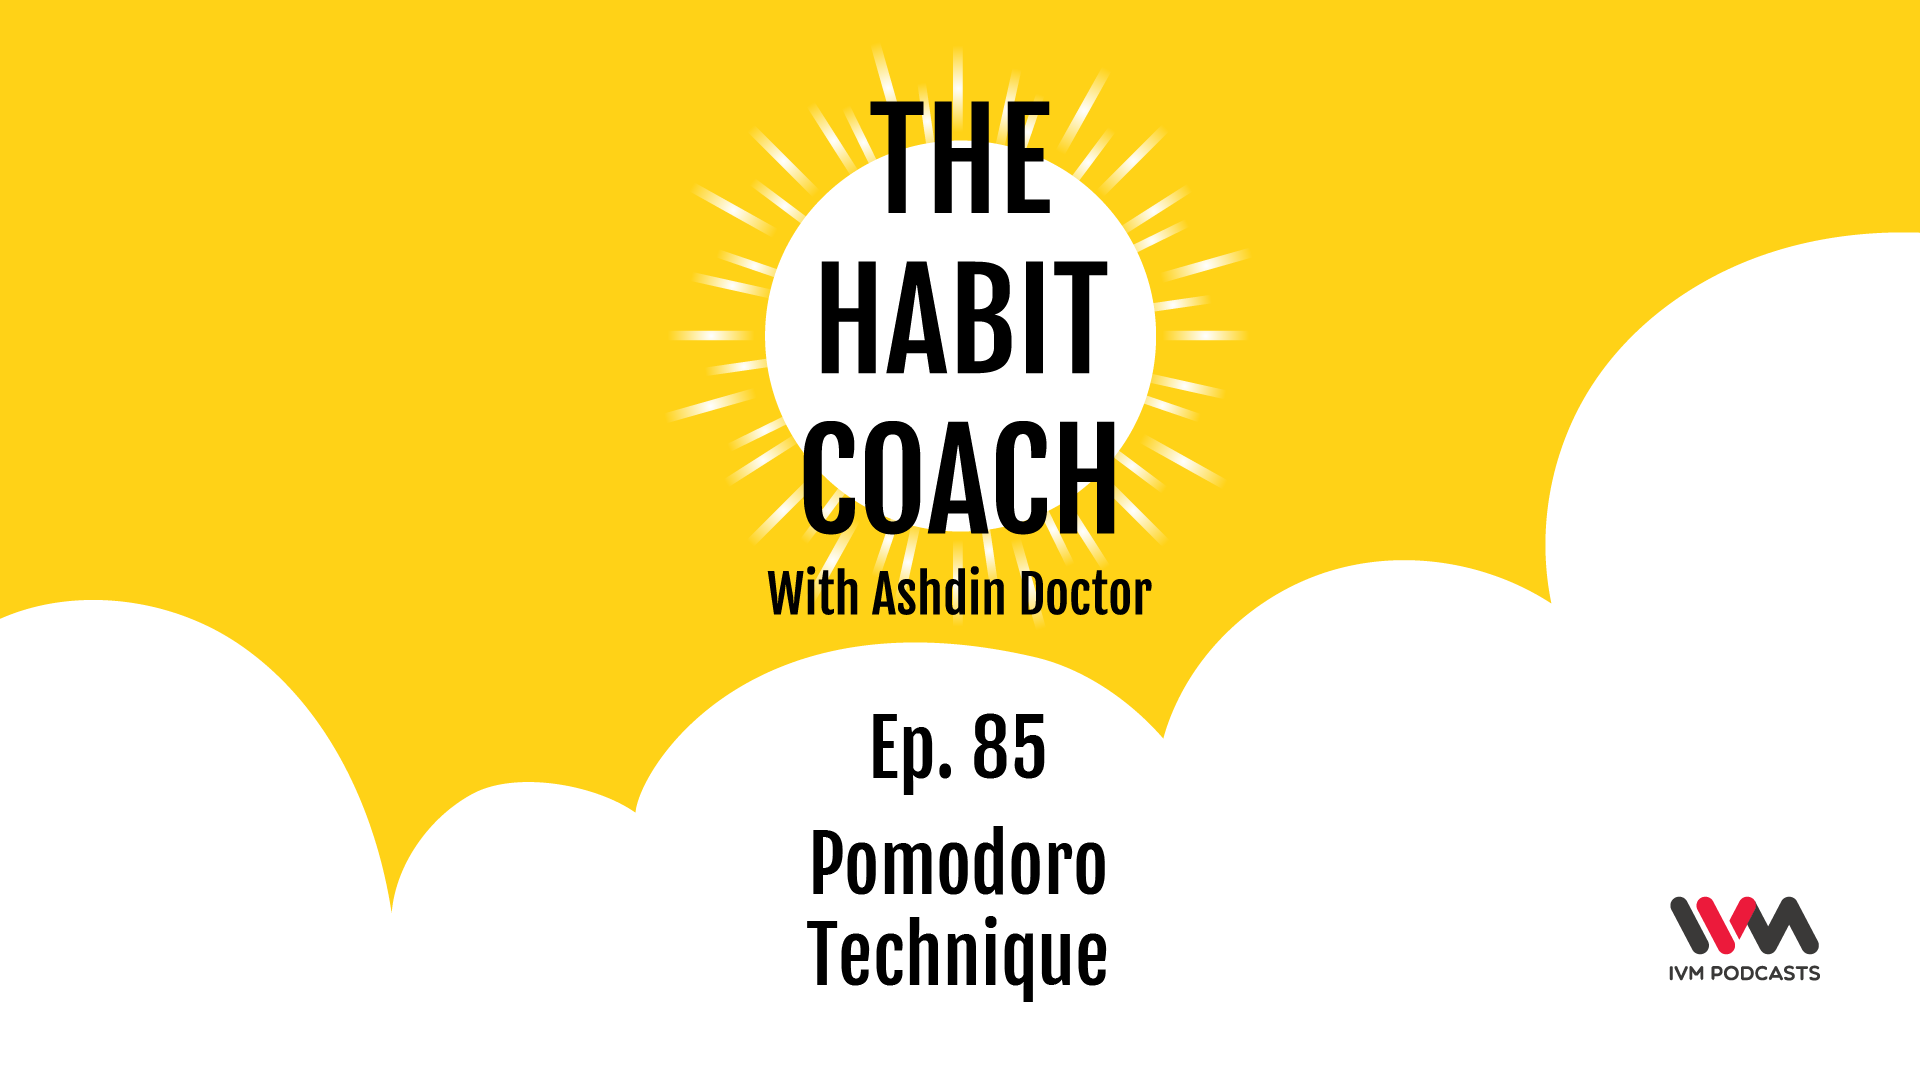 TheHabitCoachEpisode85.png